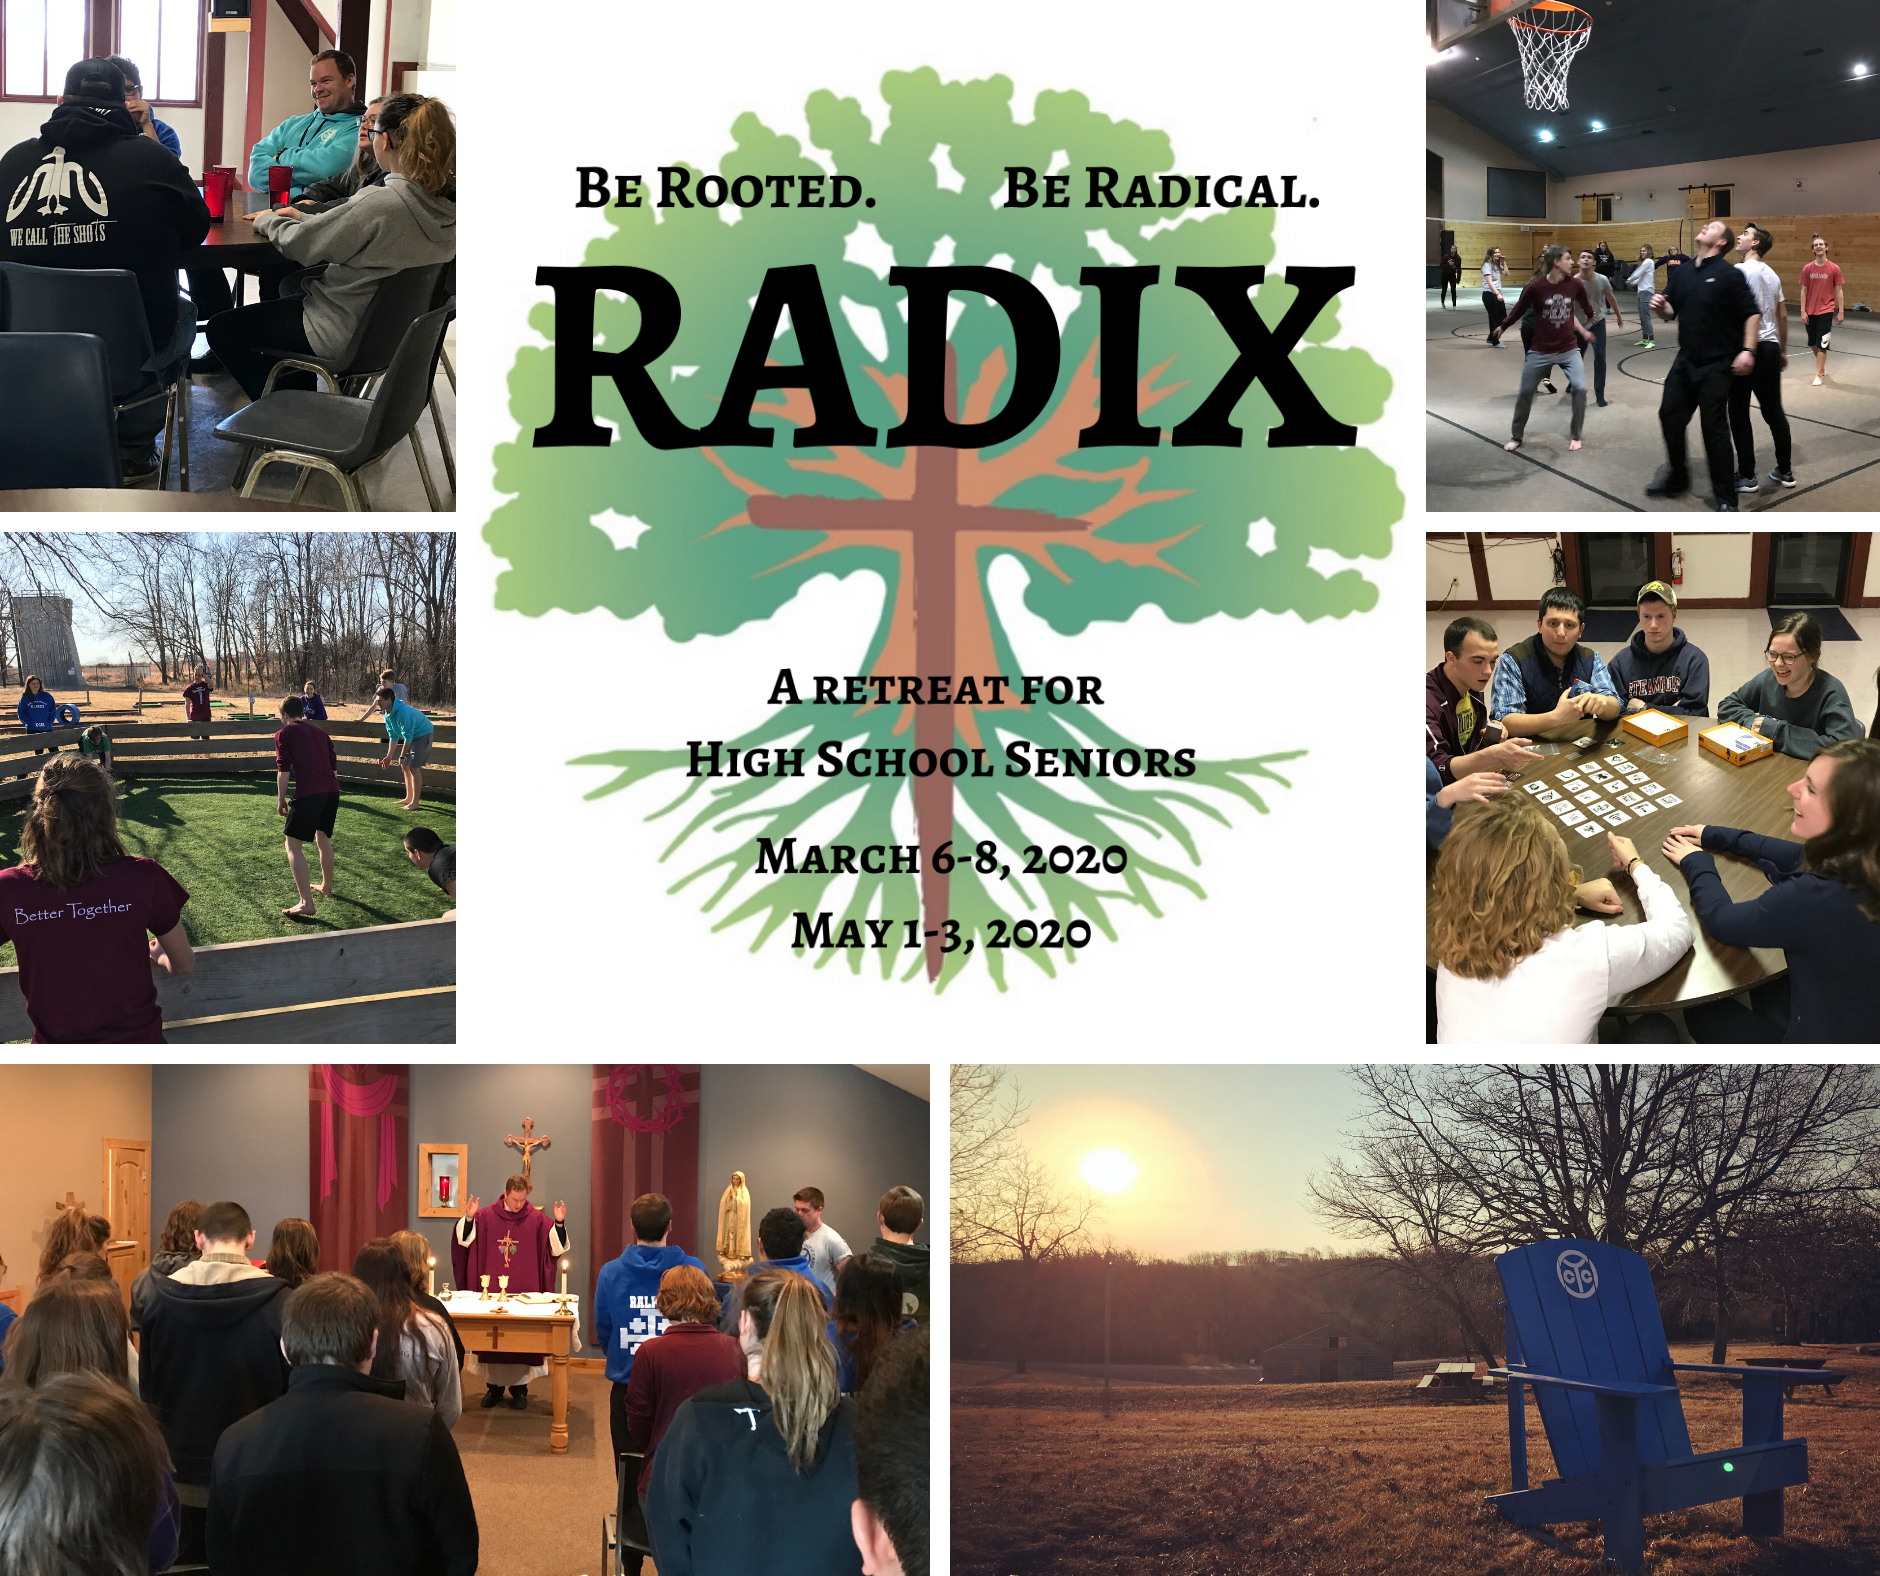 Collage of images from Radix retreat